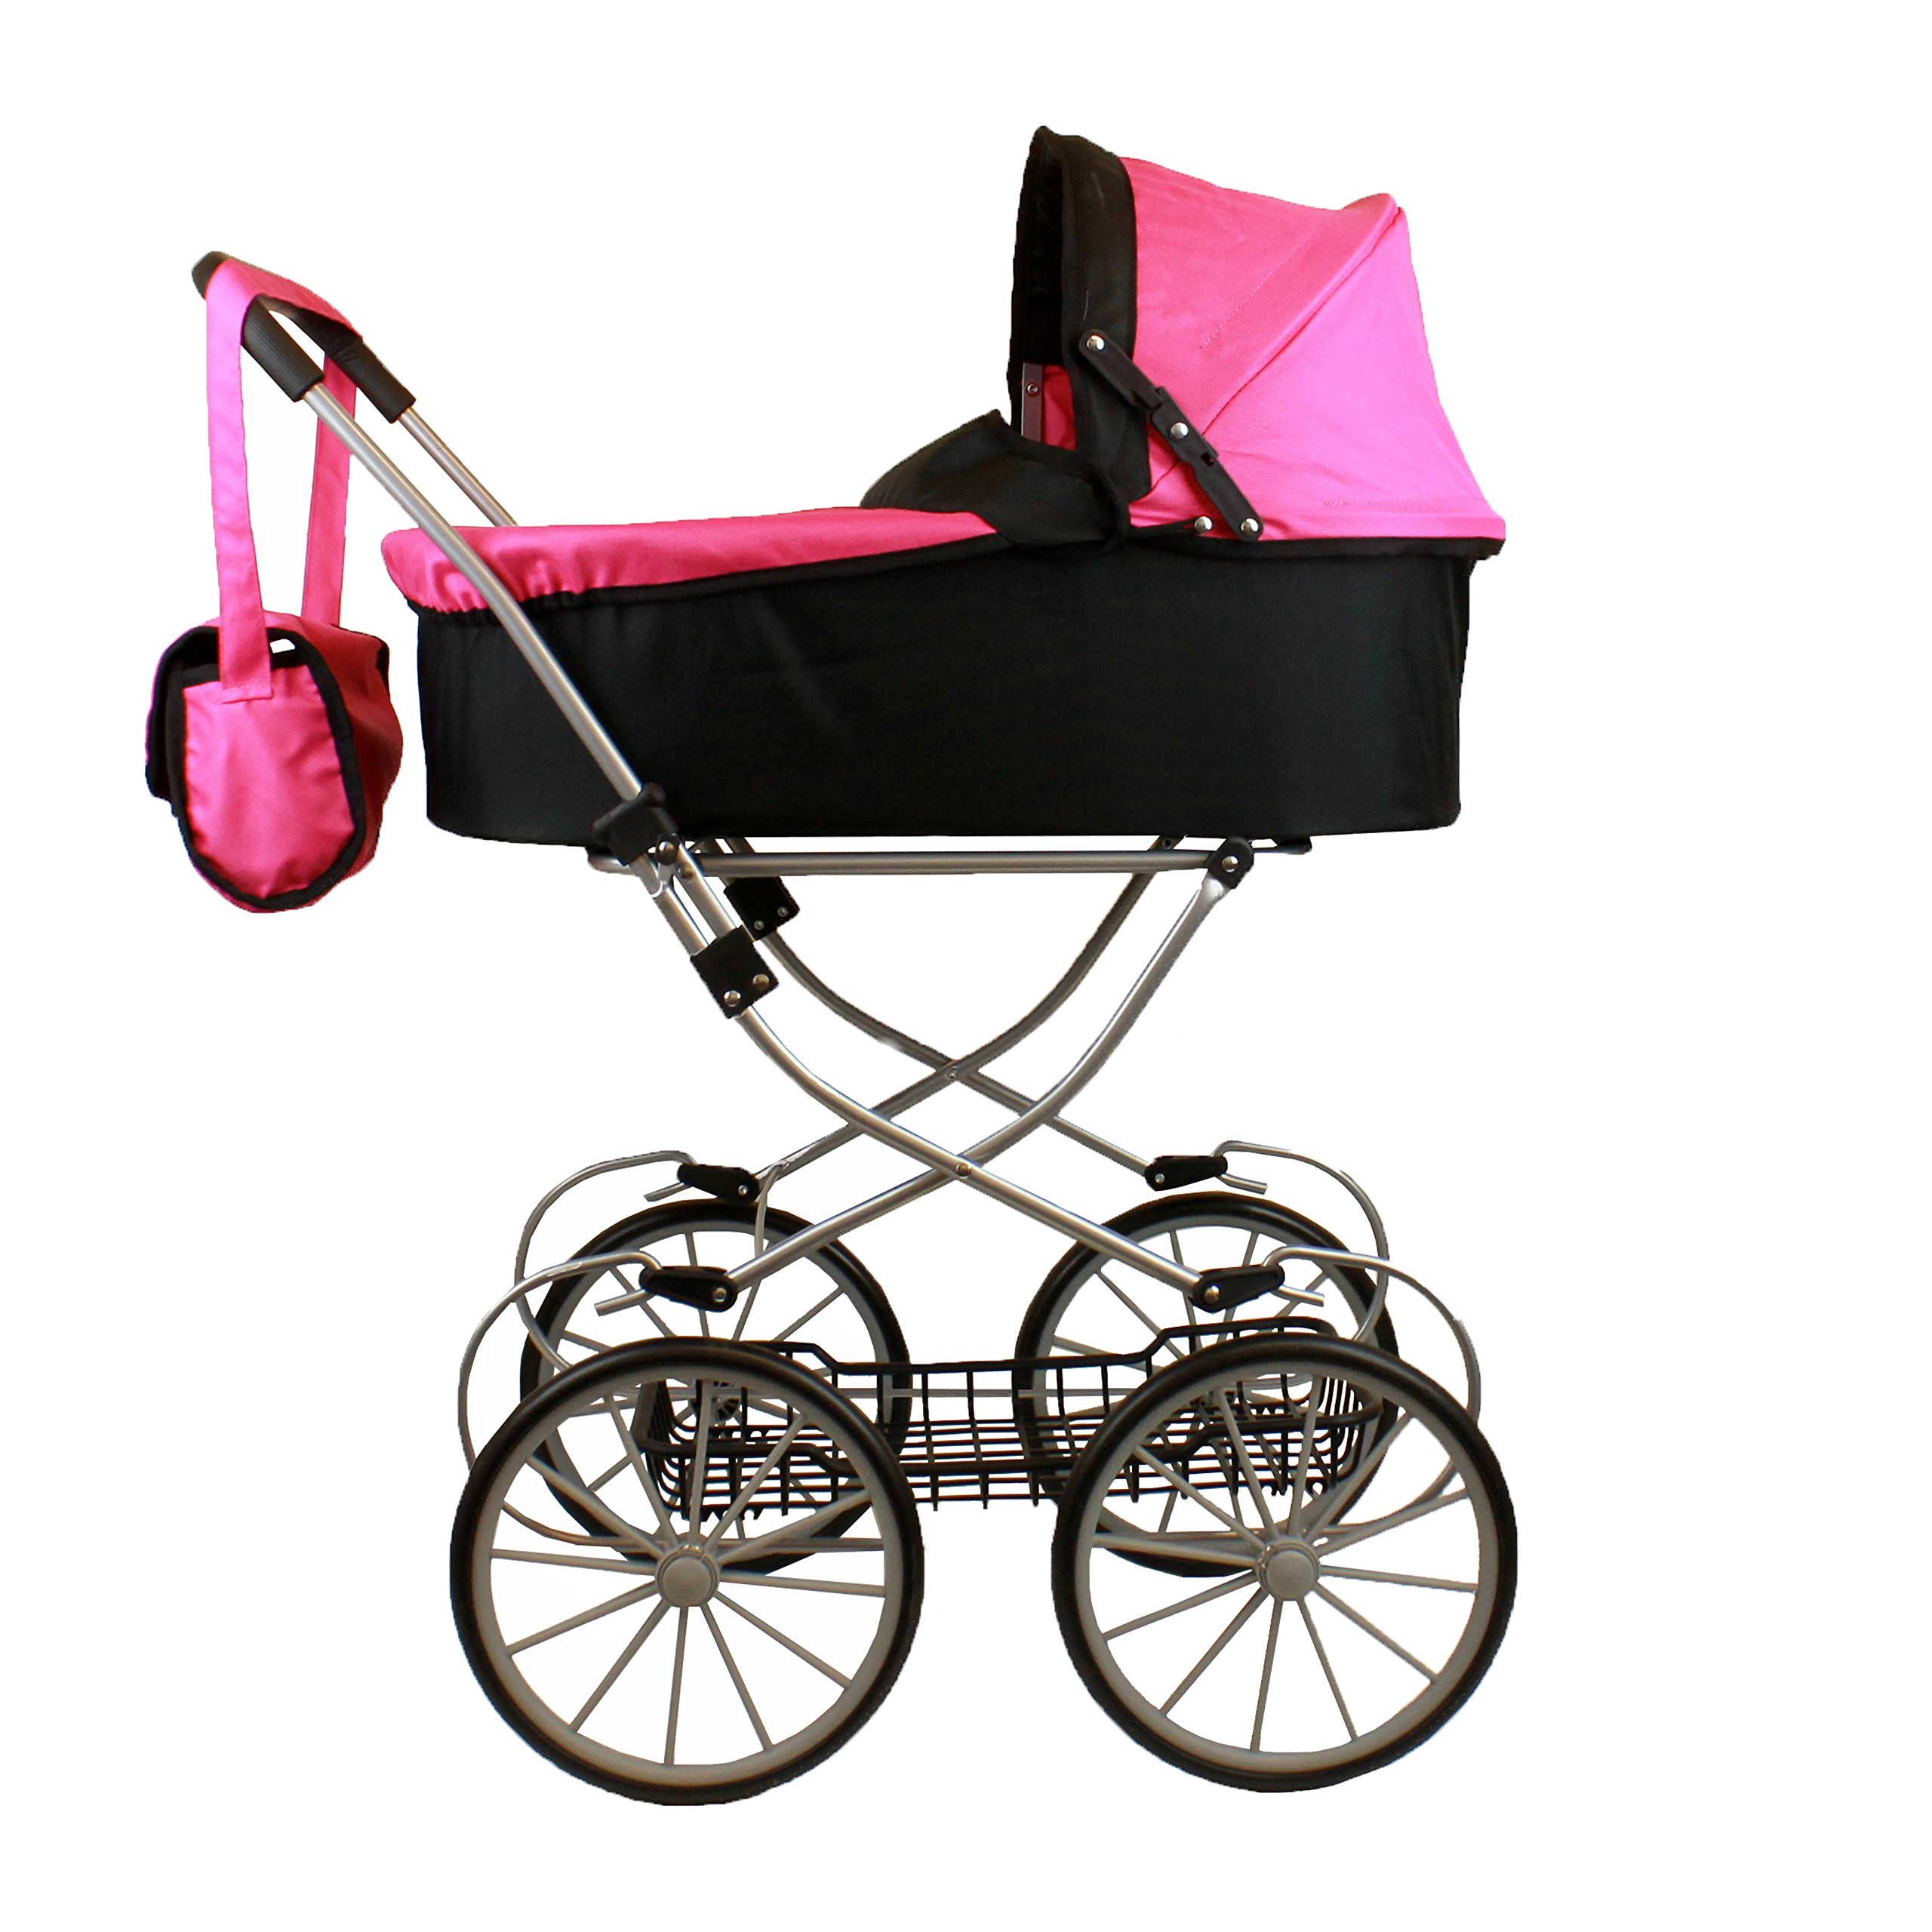 My Sweet princess deluxe pram (32'' high) with FREE carriage bag by Mommy & Me Doll Collection (Image #1)